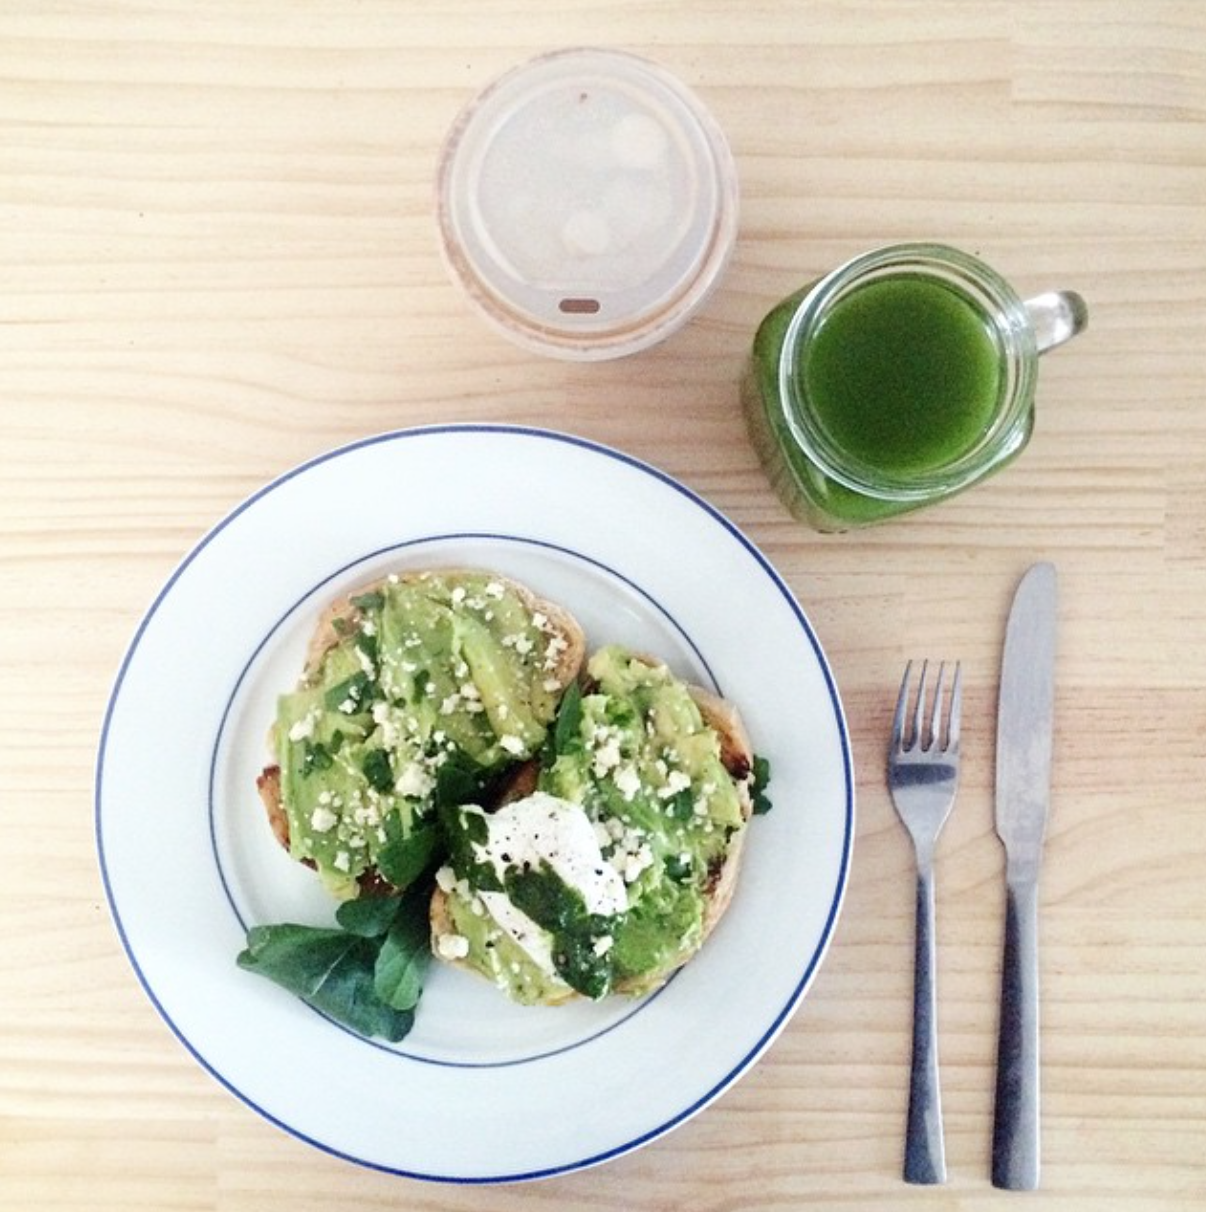 My Saturday Essentials. Avocado, Herbs & a poached egg on Sourdough, Alkaline Green Juice and Coffee! All from my absolute favourite organic cafe,  Organics at Home .